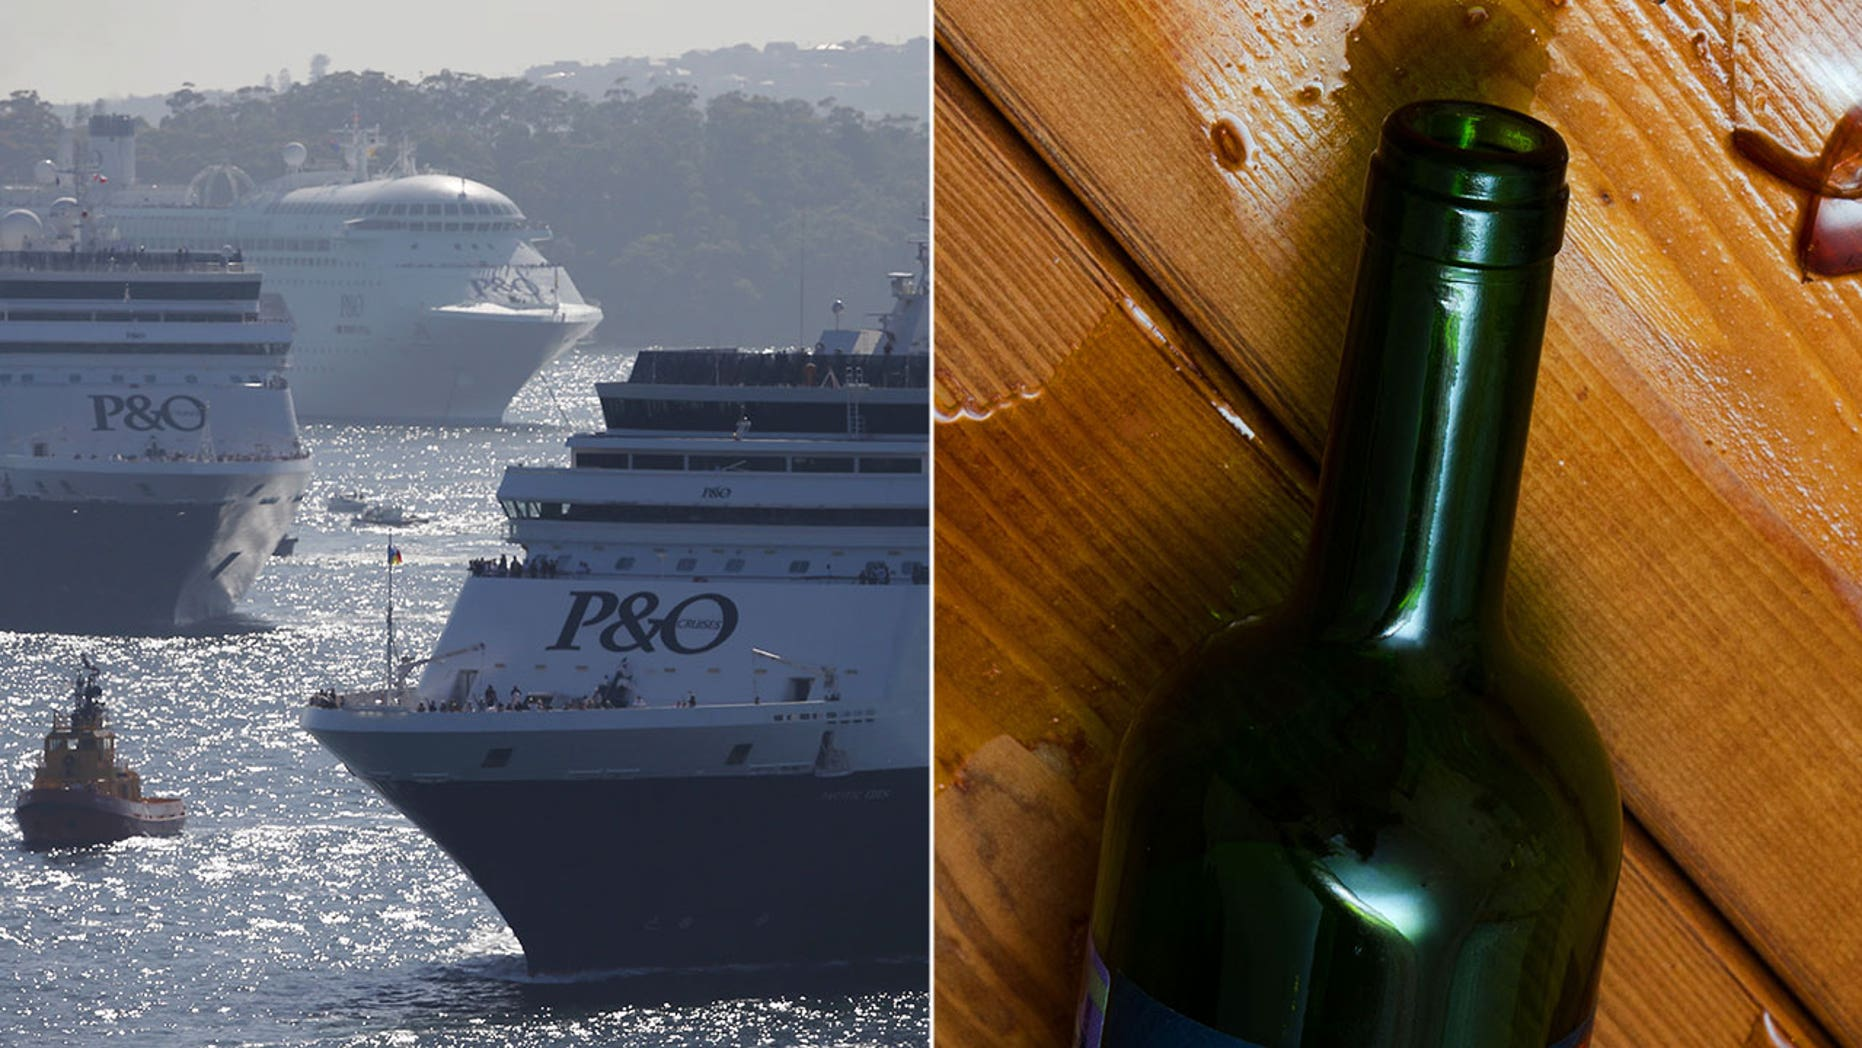 A 37-year-old woman aboard the Pacific Explorer allegedly smacked a 21-year-old man over the head with an empty wine bottle during a fight on Saturday night.